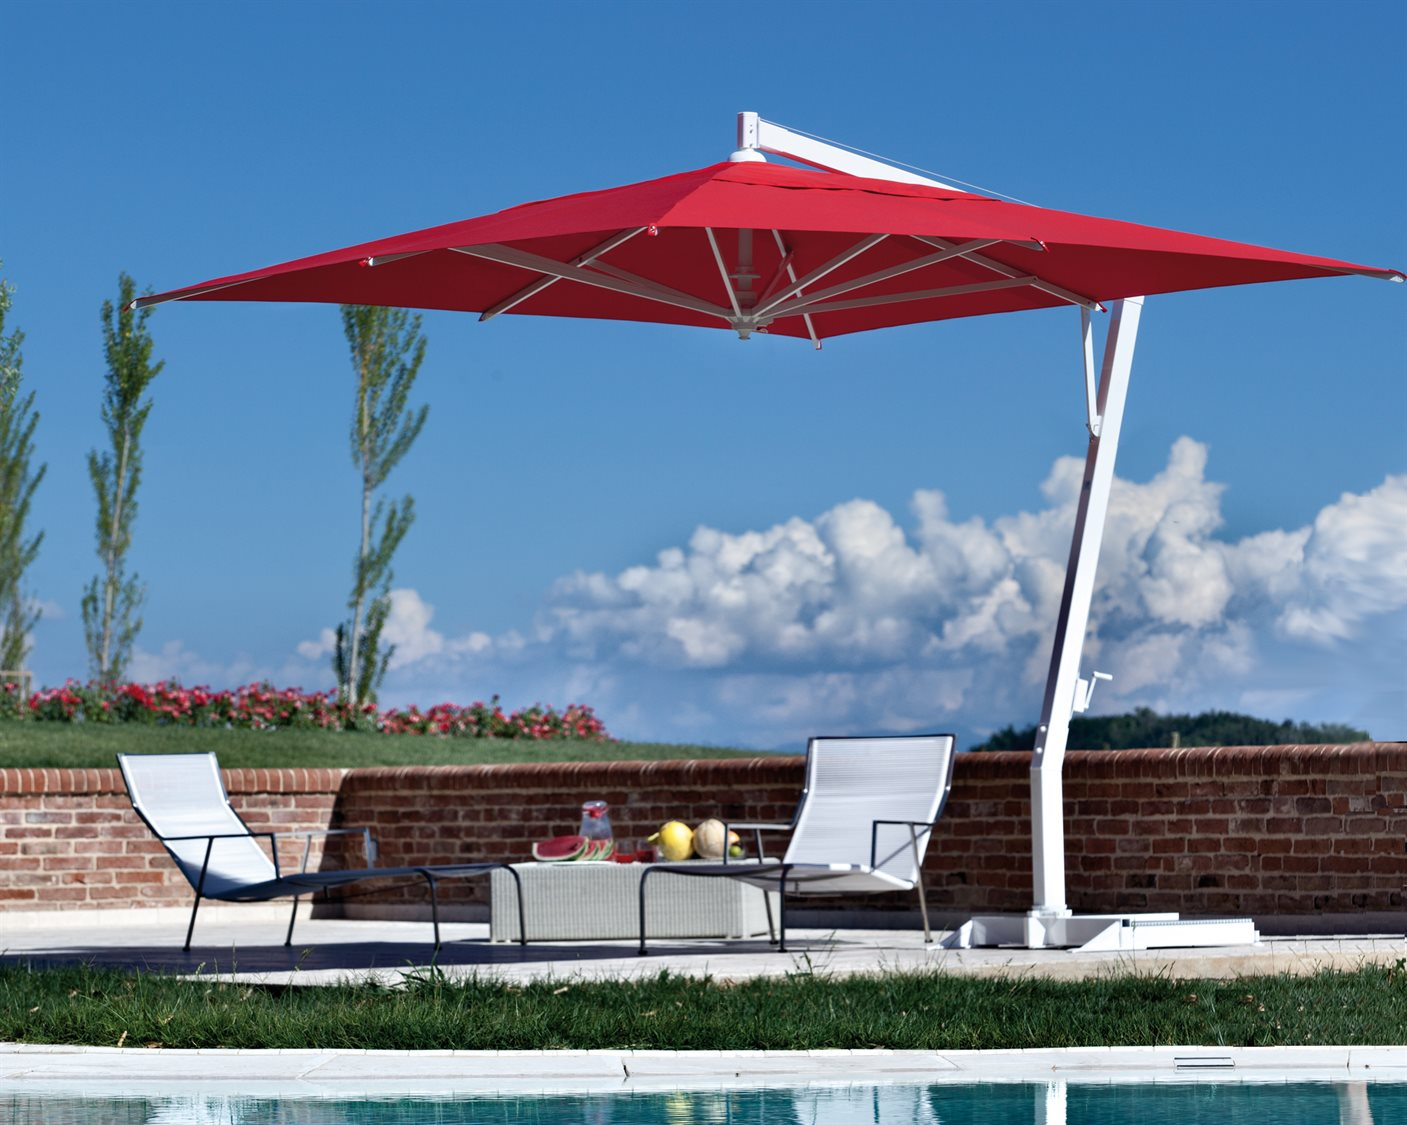 A red Fim Umbrella with a silver pole, covers 2 white lounge chairs with blue skies and a brick wall in the background.